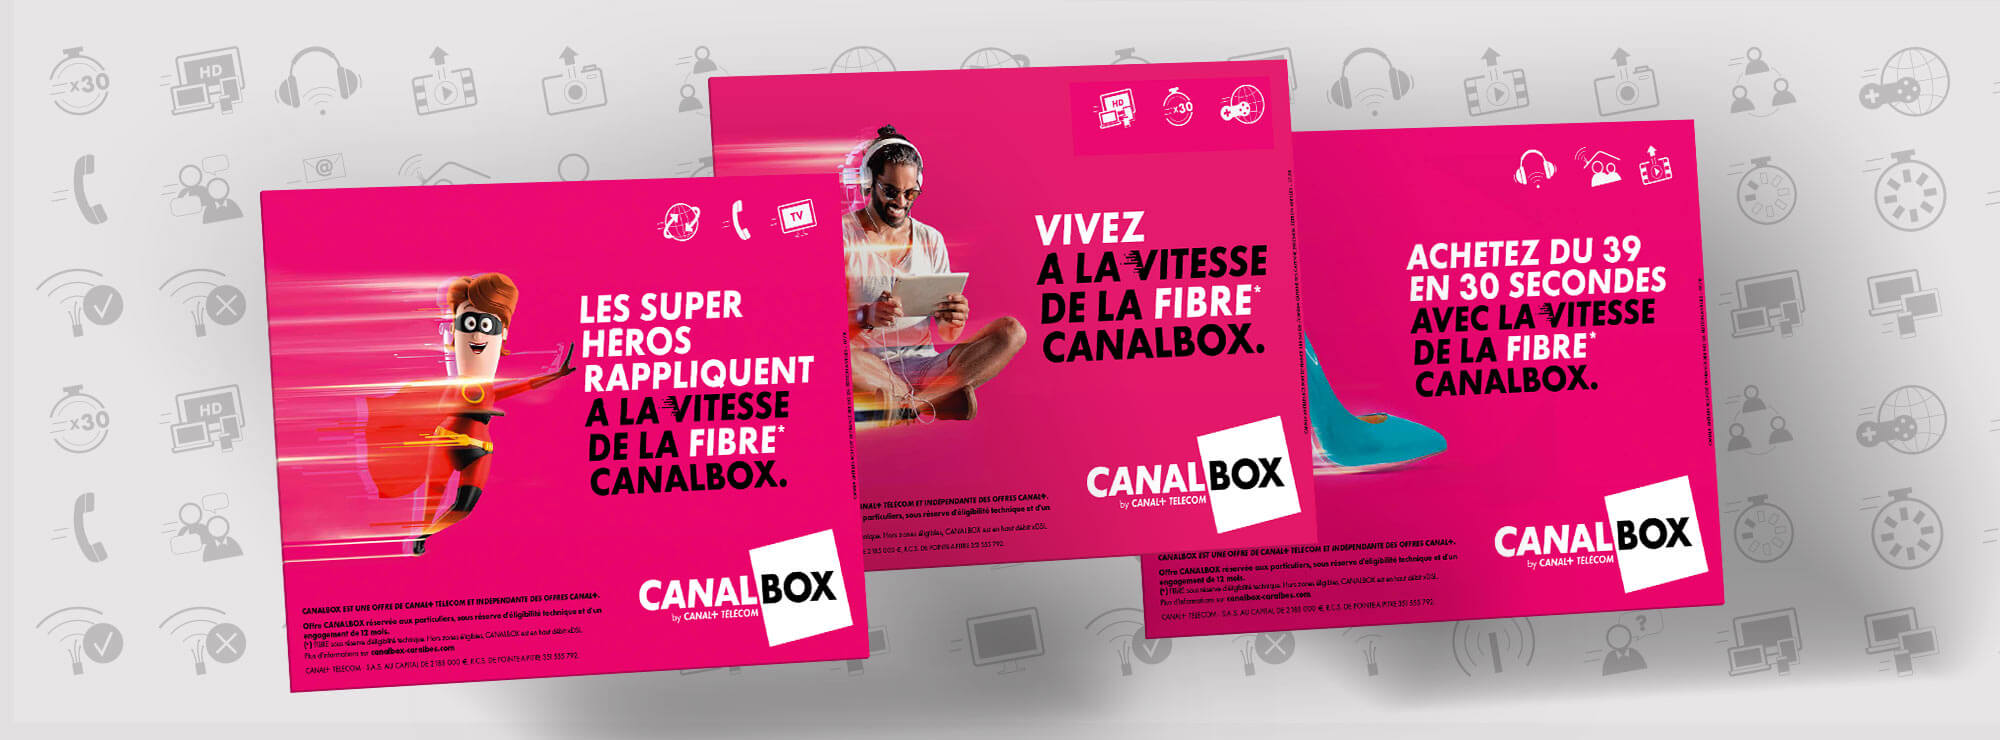 03 canall  canalbox campagne.jpg